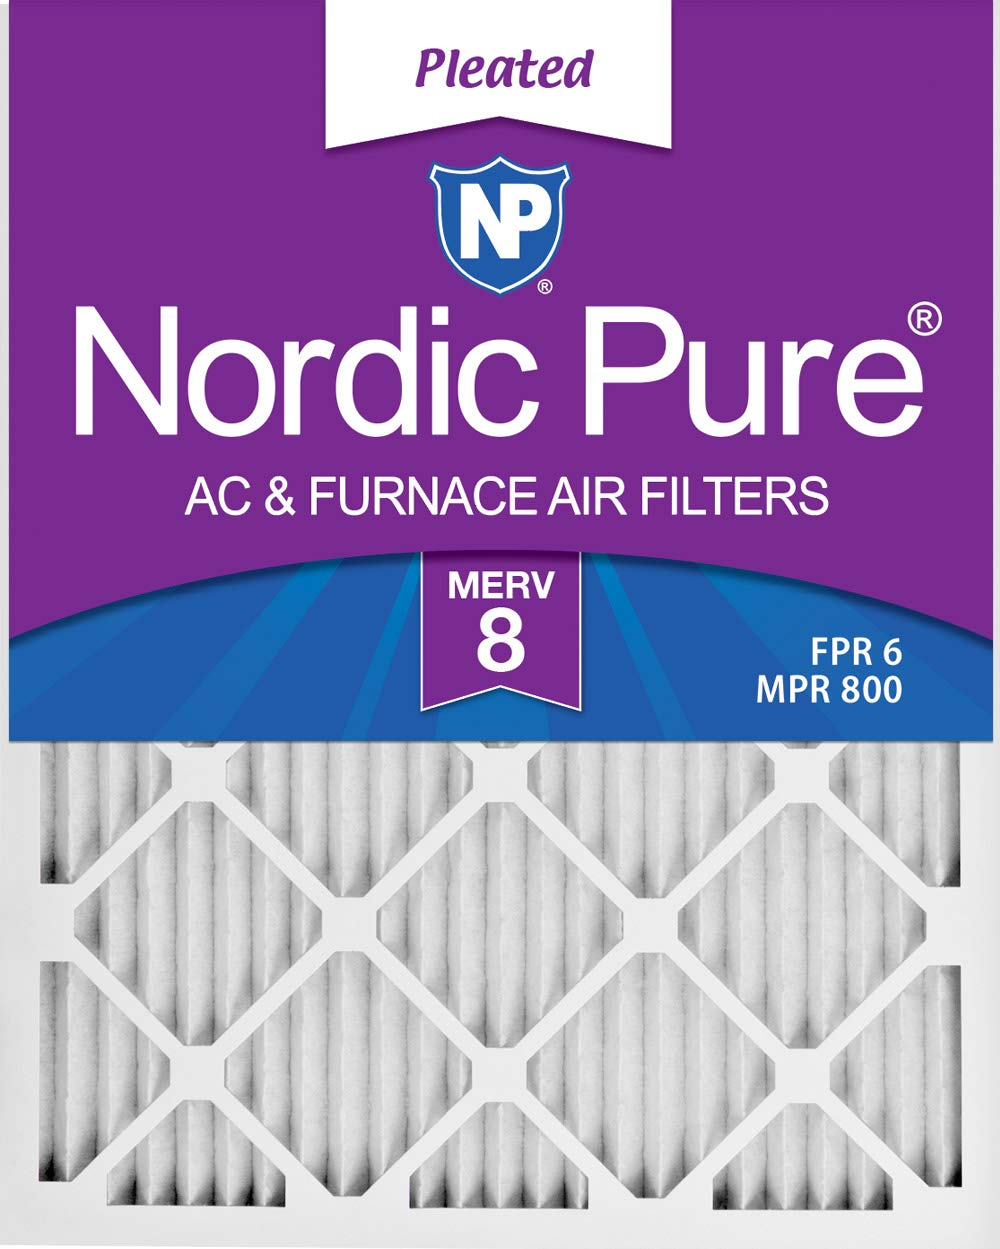 Nordic Pure 20x25x1 MERV 8 Pleated AC Furnace Air Filters